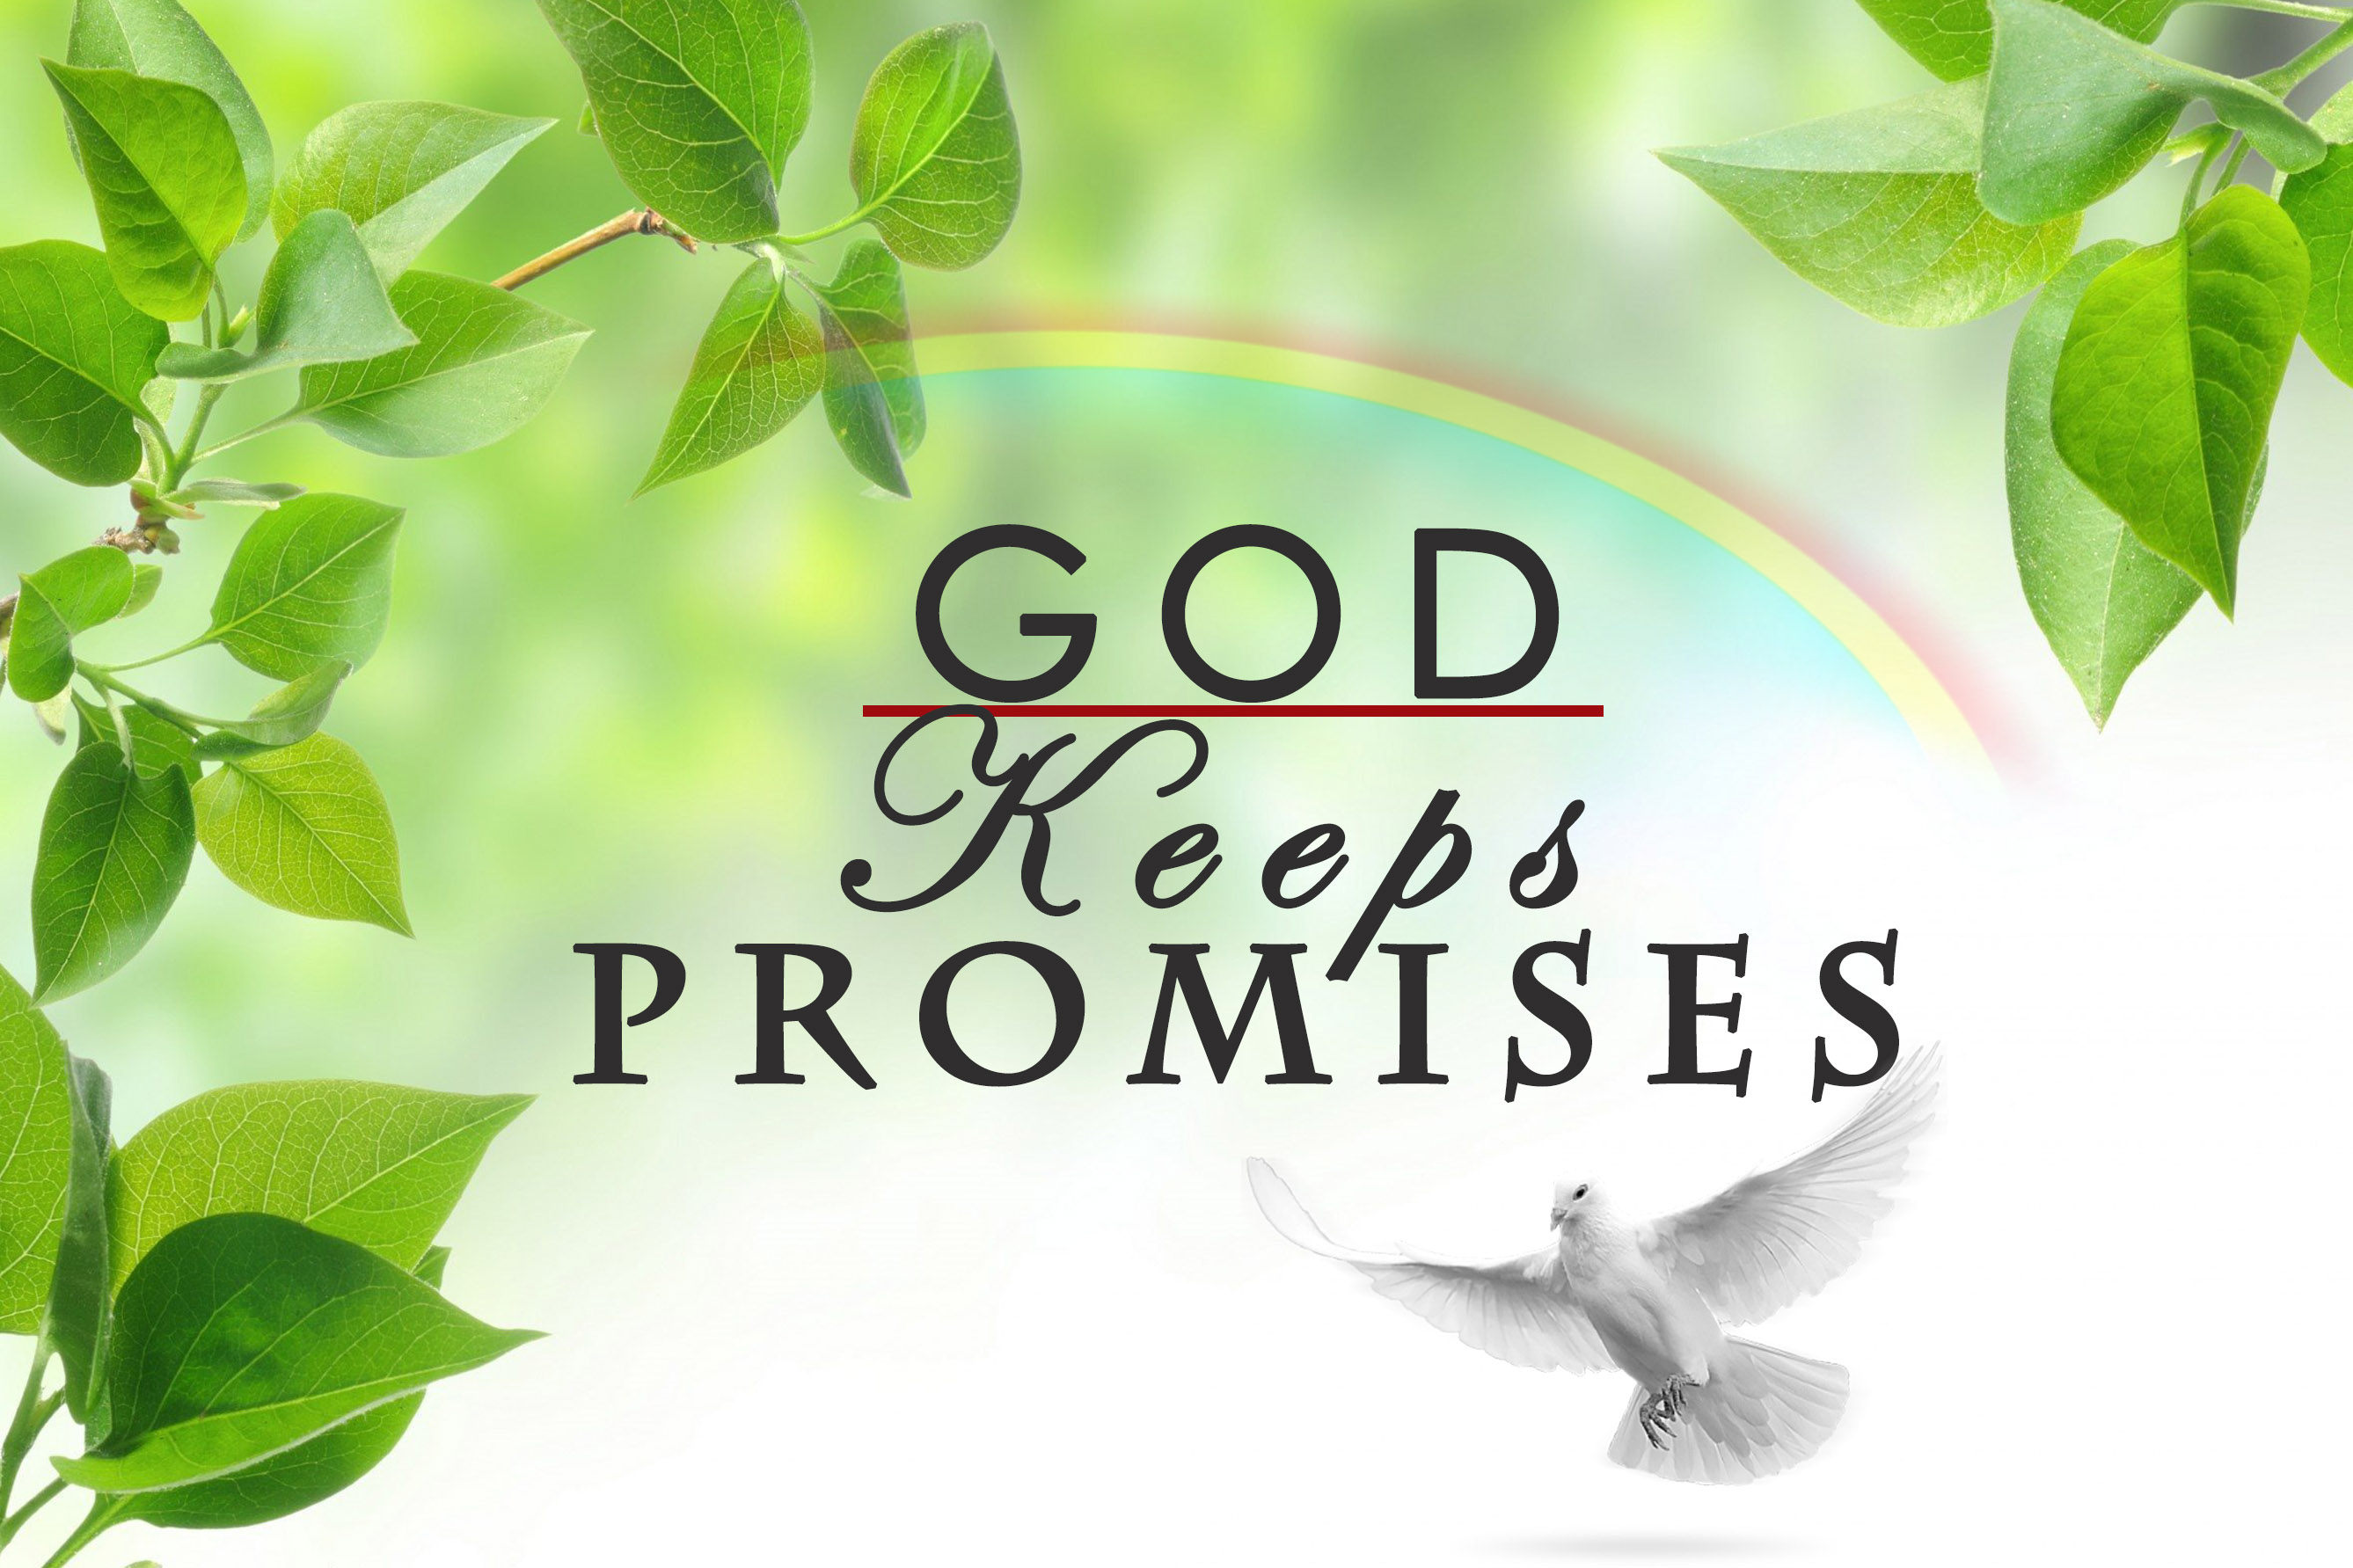 GOD KEEPS PROMISES